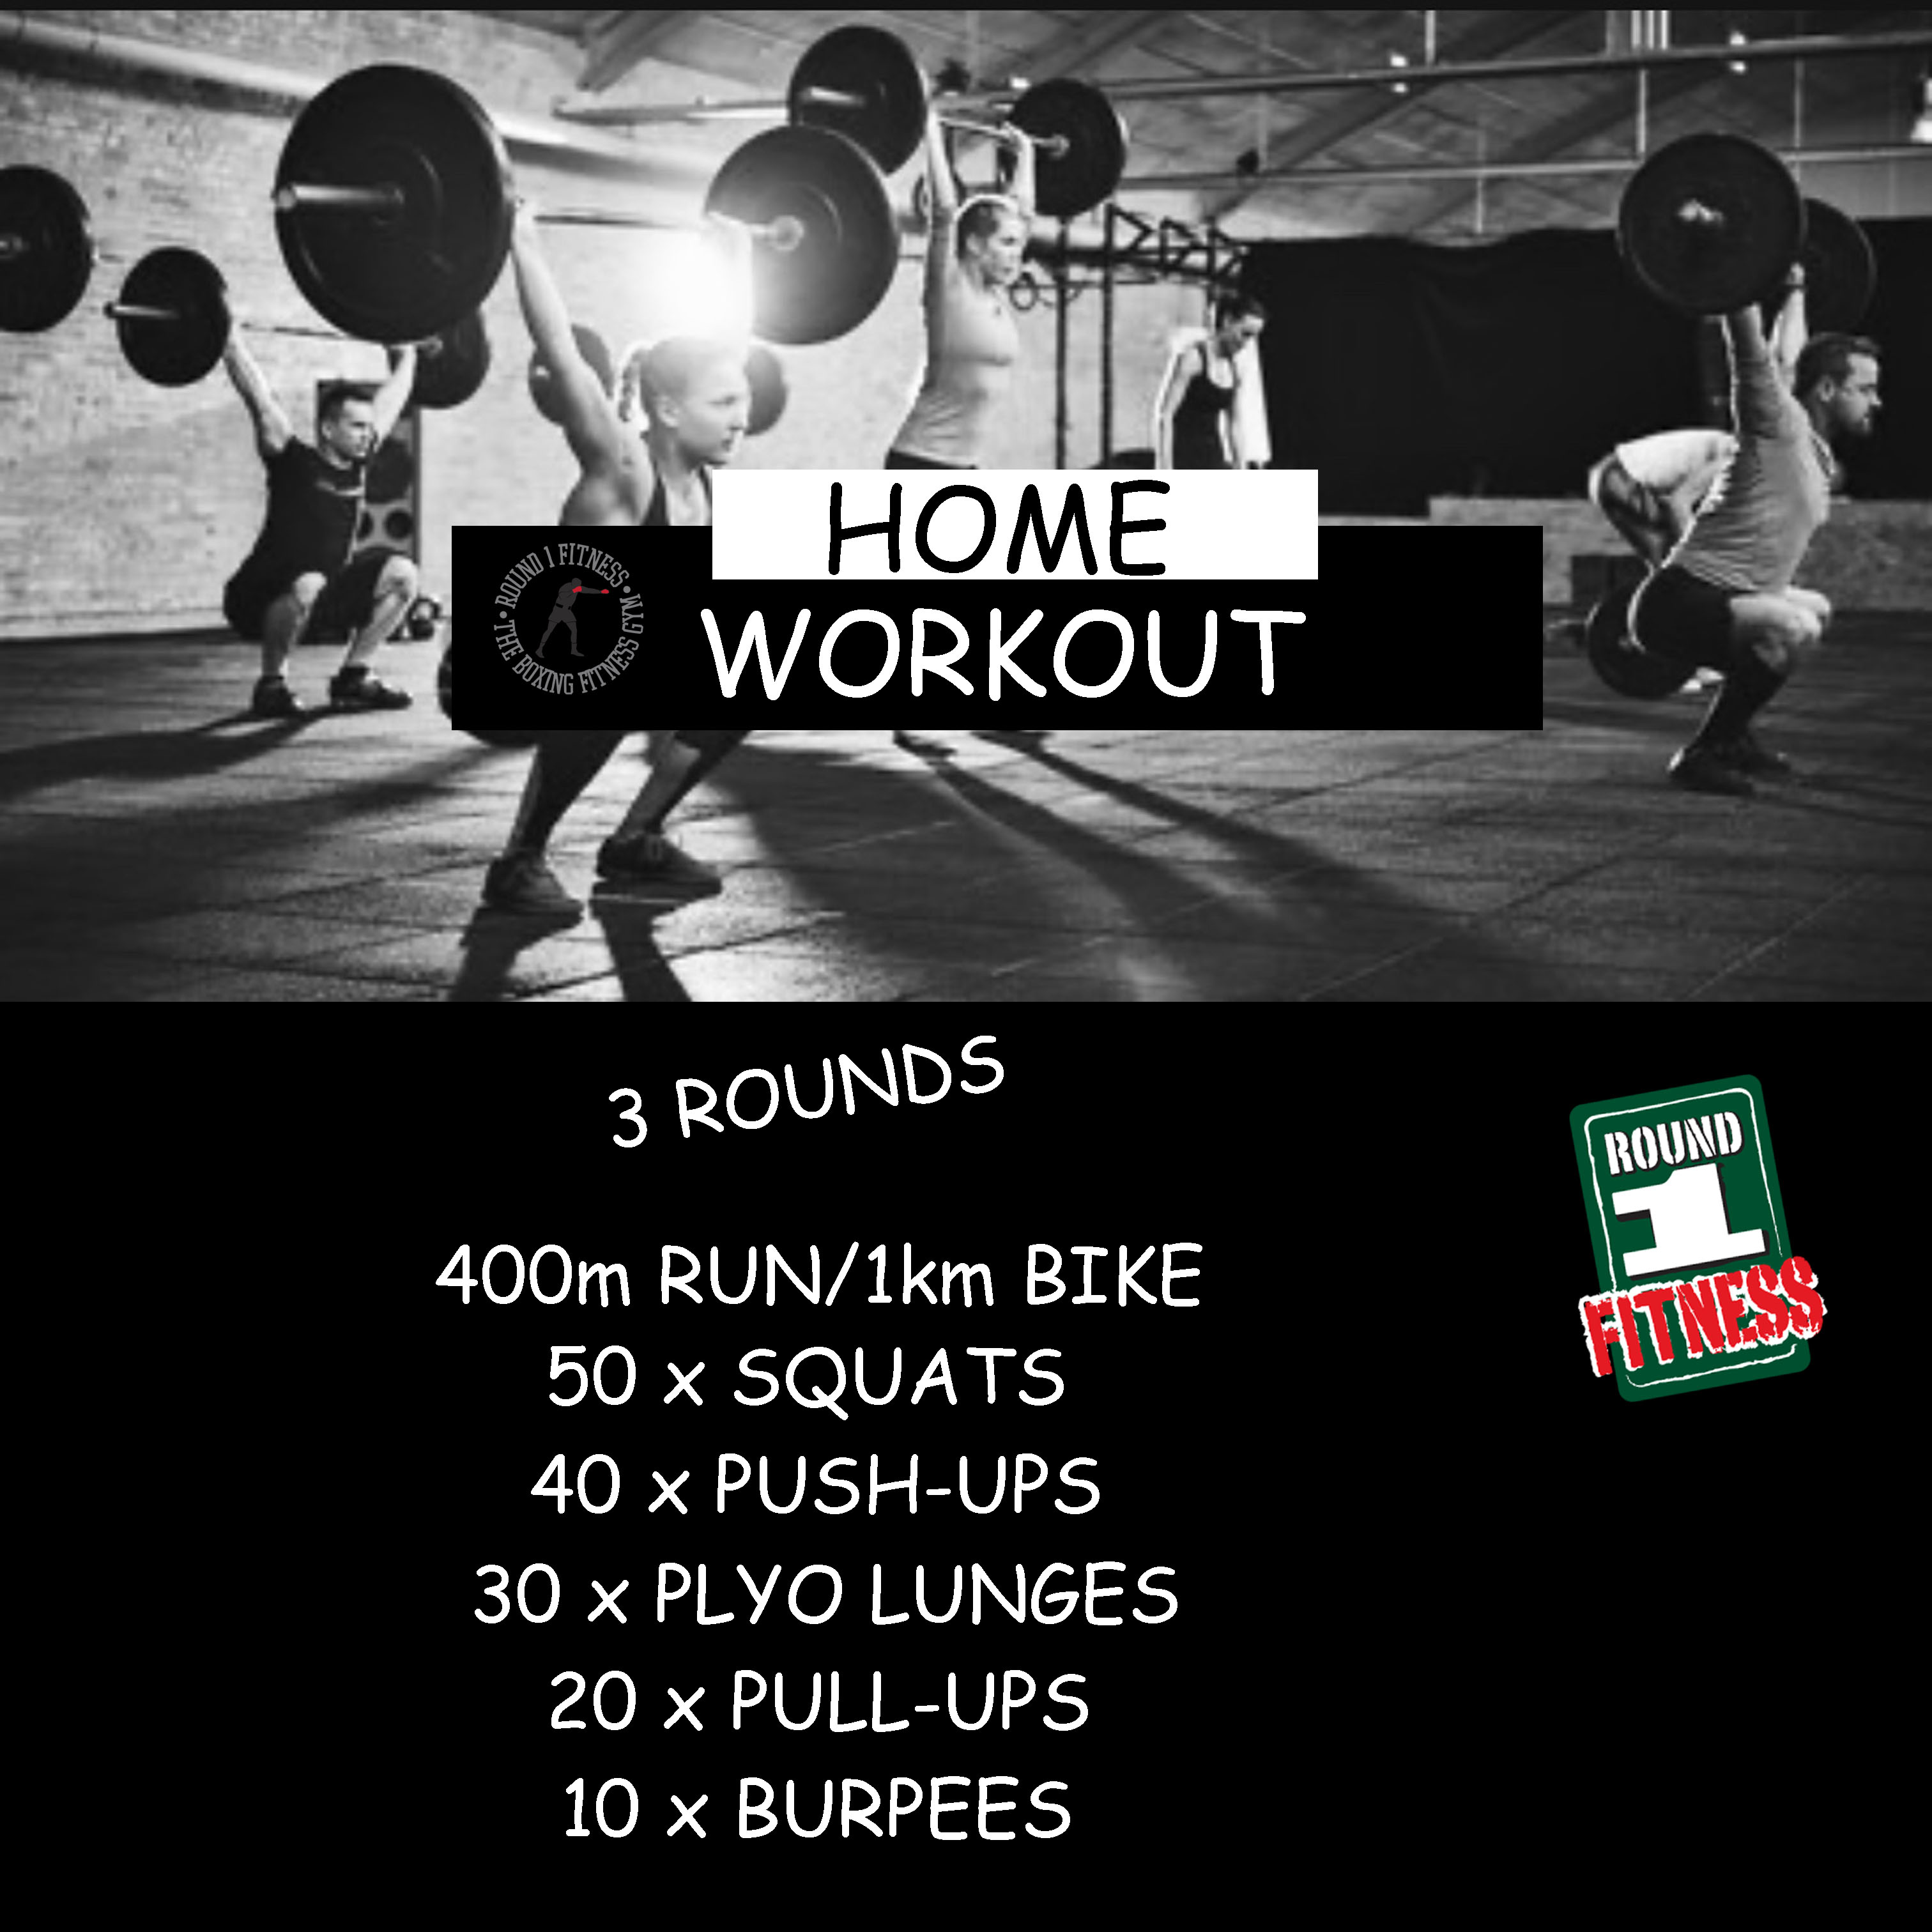 Home Workout:  Friday, March 27th